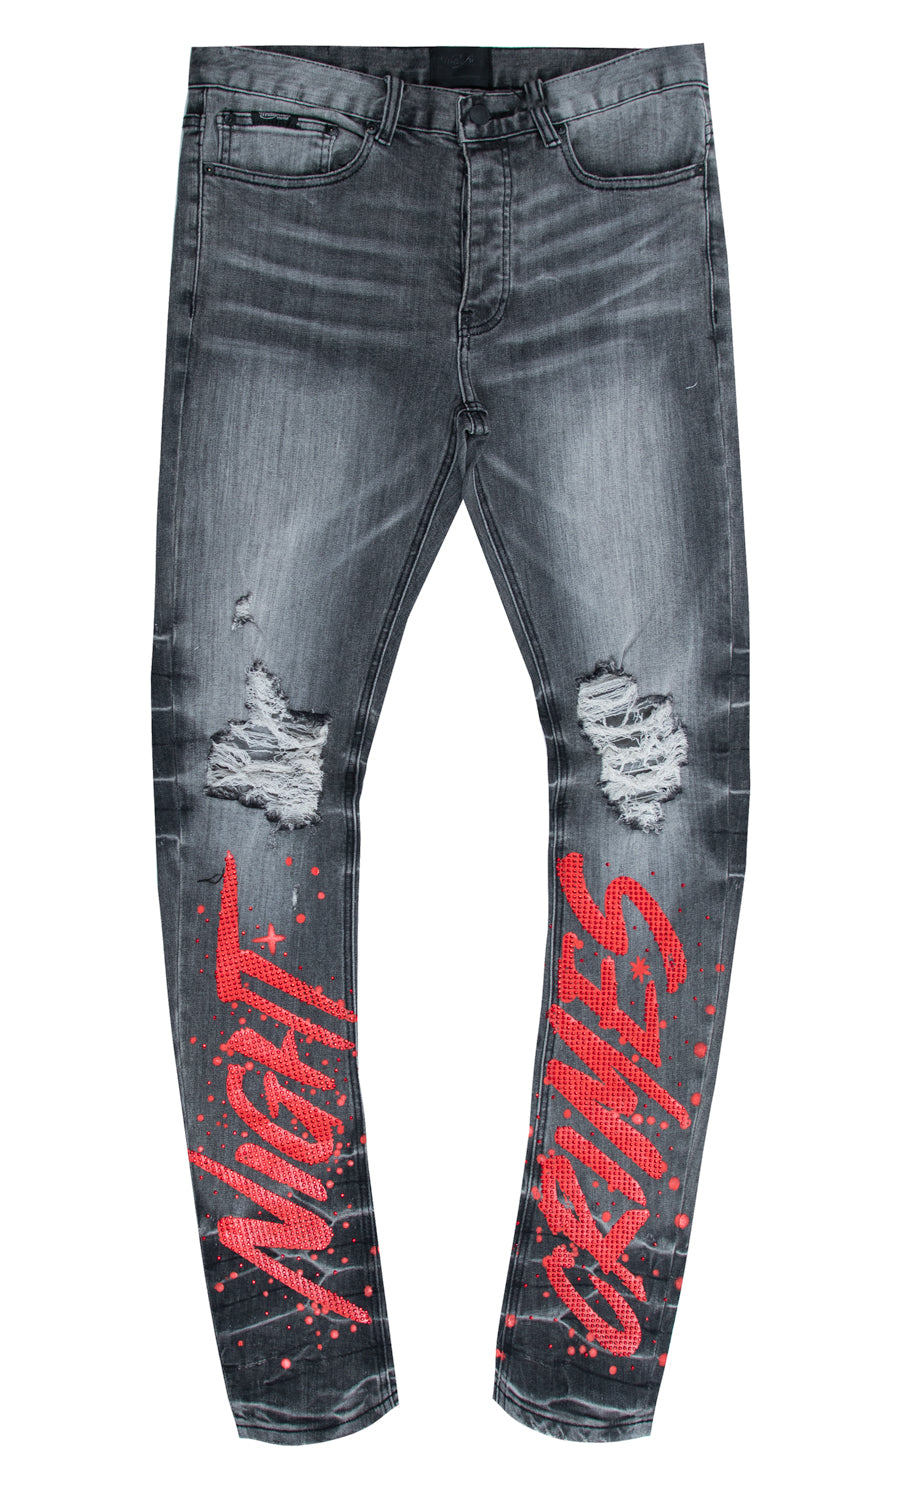 NIGHT CRIMES CRYSTAL DENIM PANT GREY